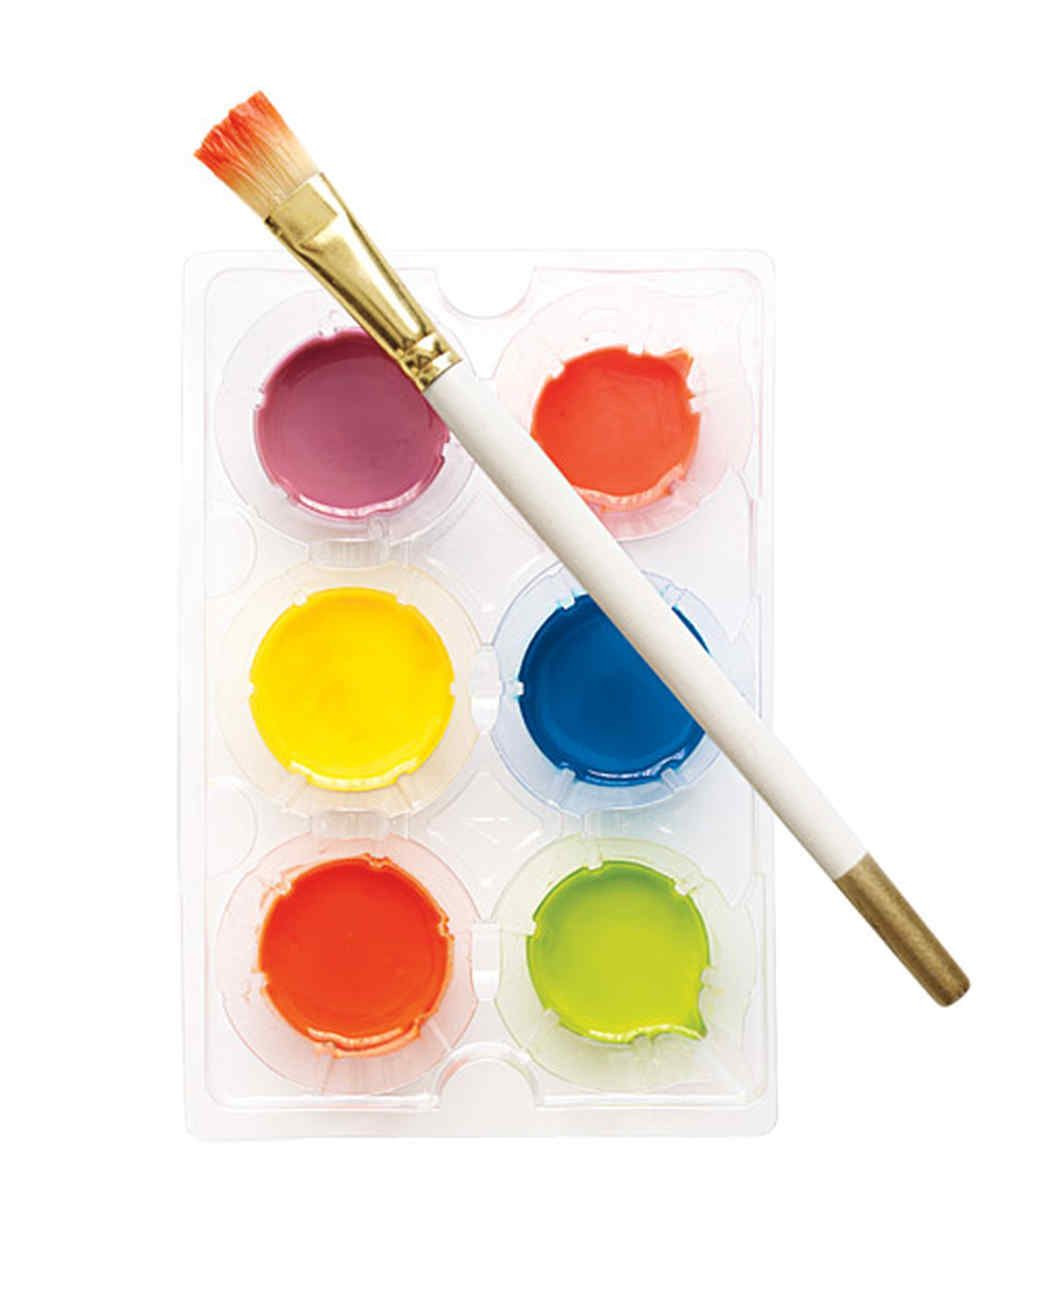 Watercolor Paint Homemade Watercolors Homemade Art Crafts For Kids